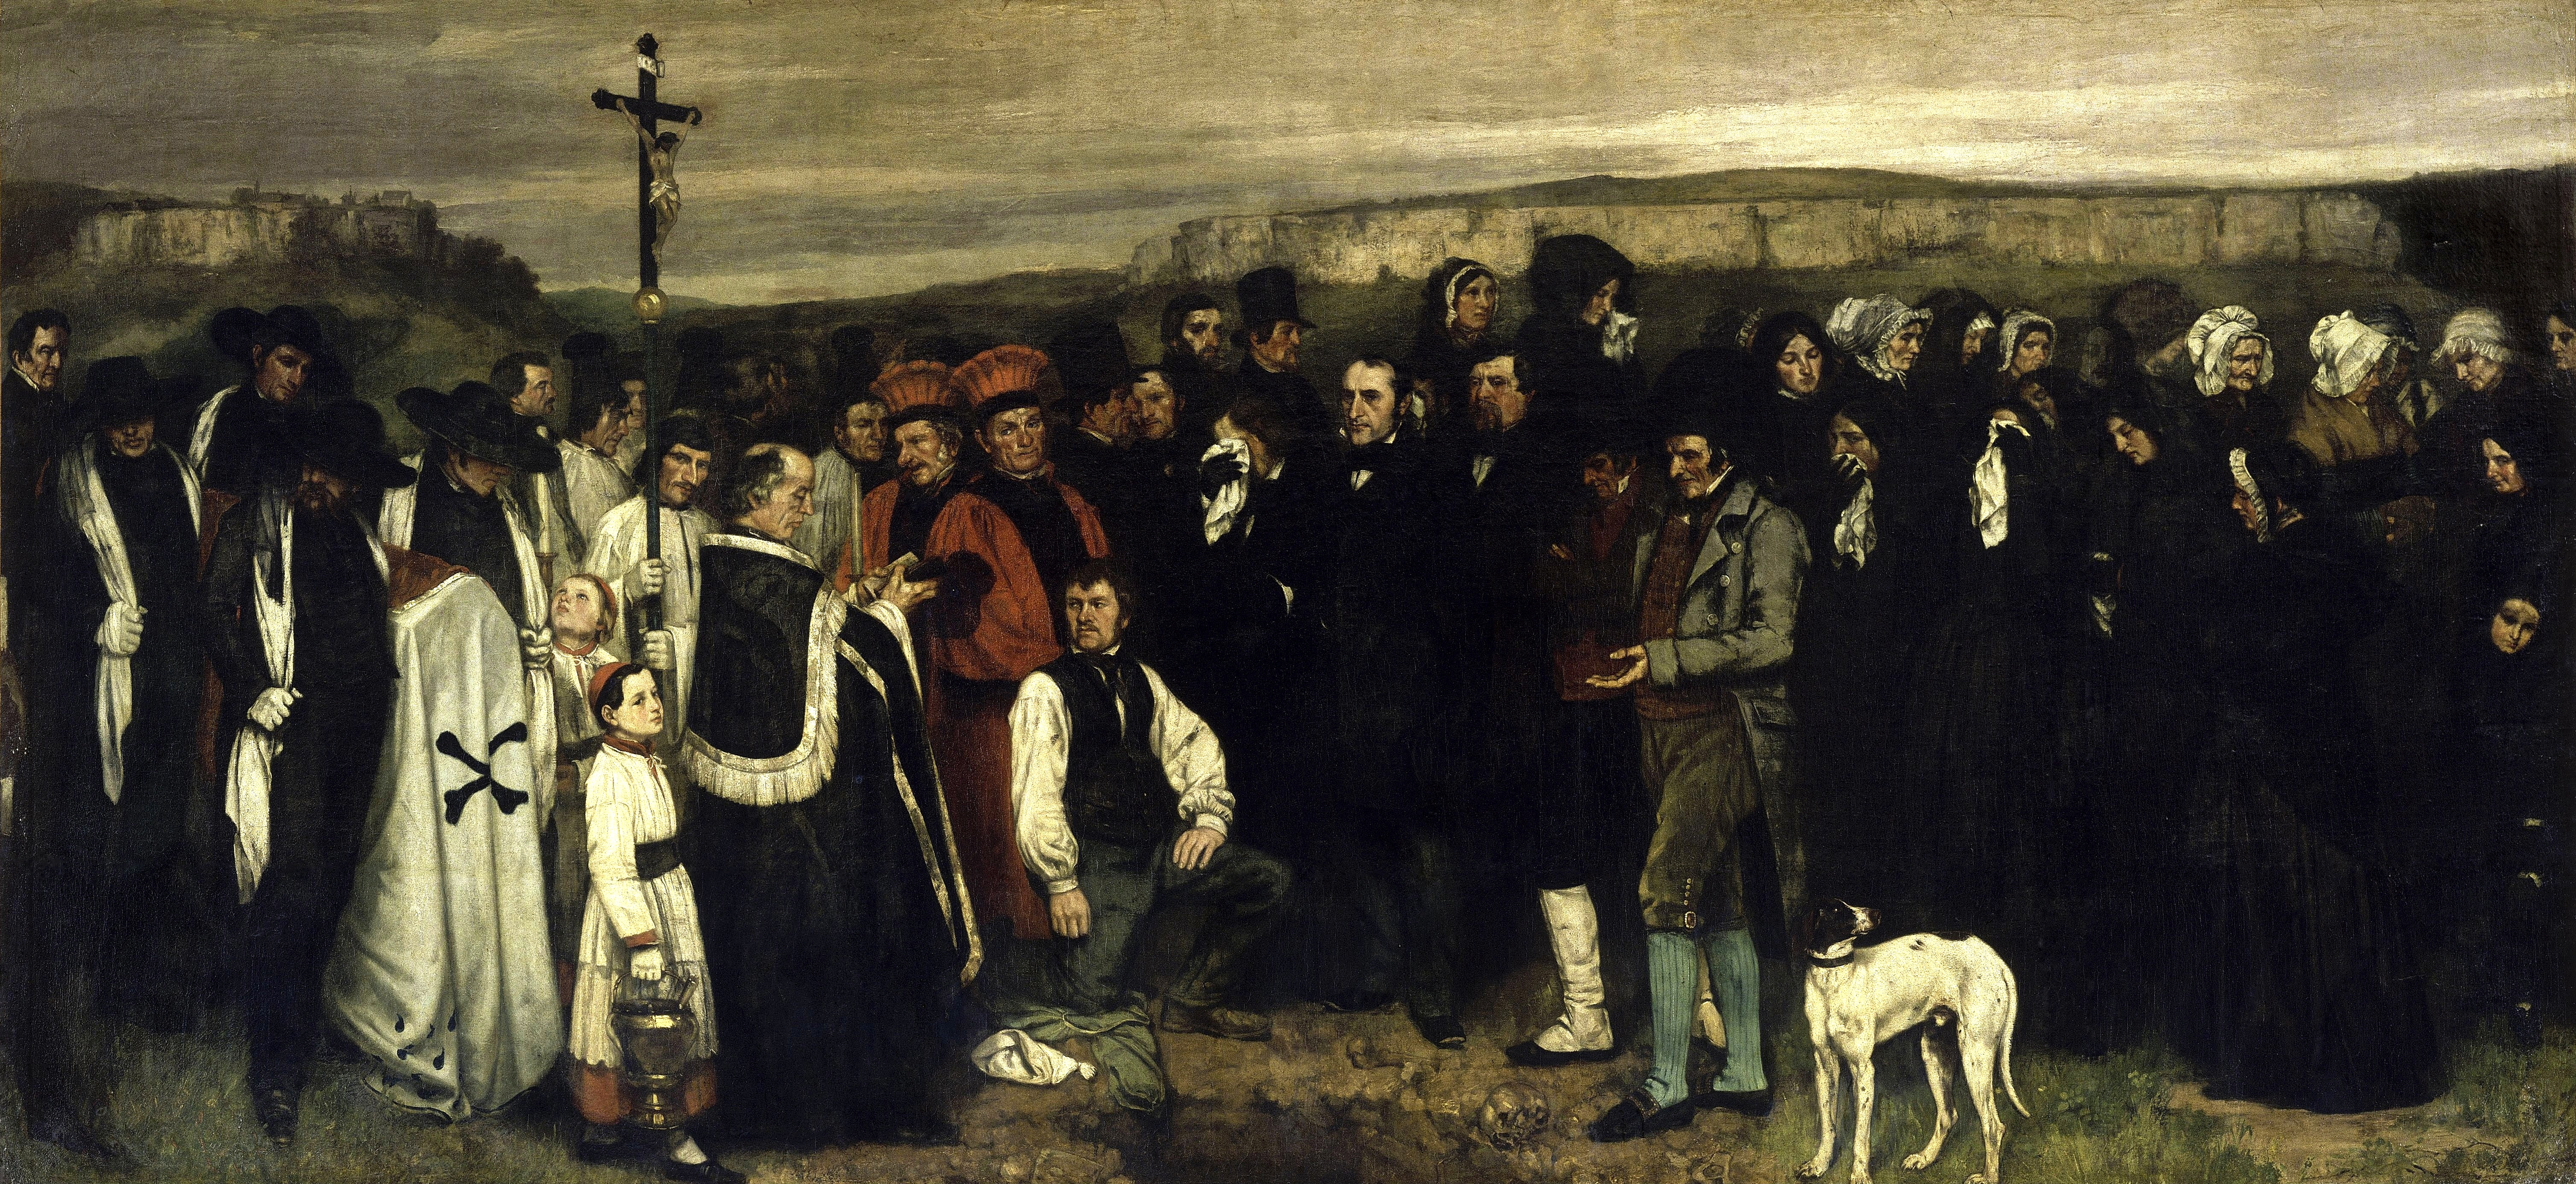 Gustave_Courbet_-_A_Burial_at_Ornans_-_Google_Art_Project_2